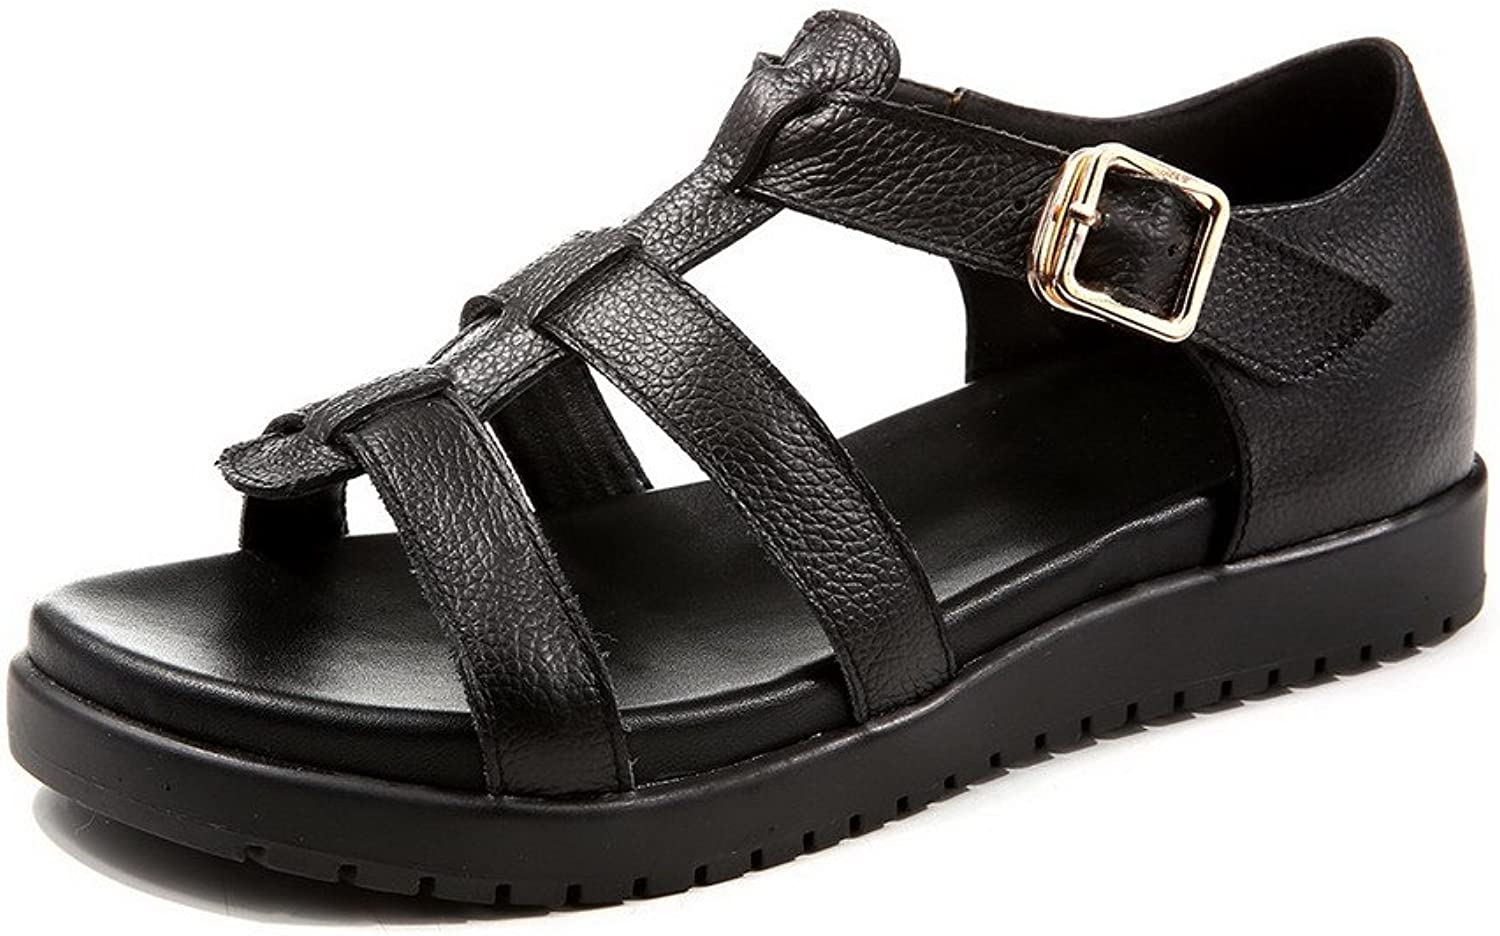 AmoonyFashion Women's Open-Toe Low-Heels Soft Leather Solid Buckle Sandals